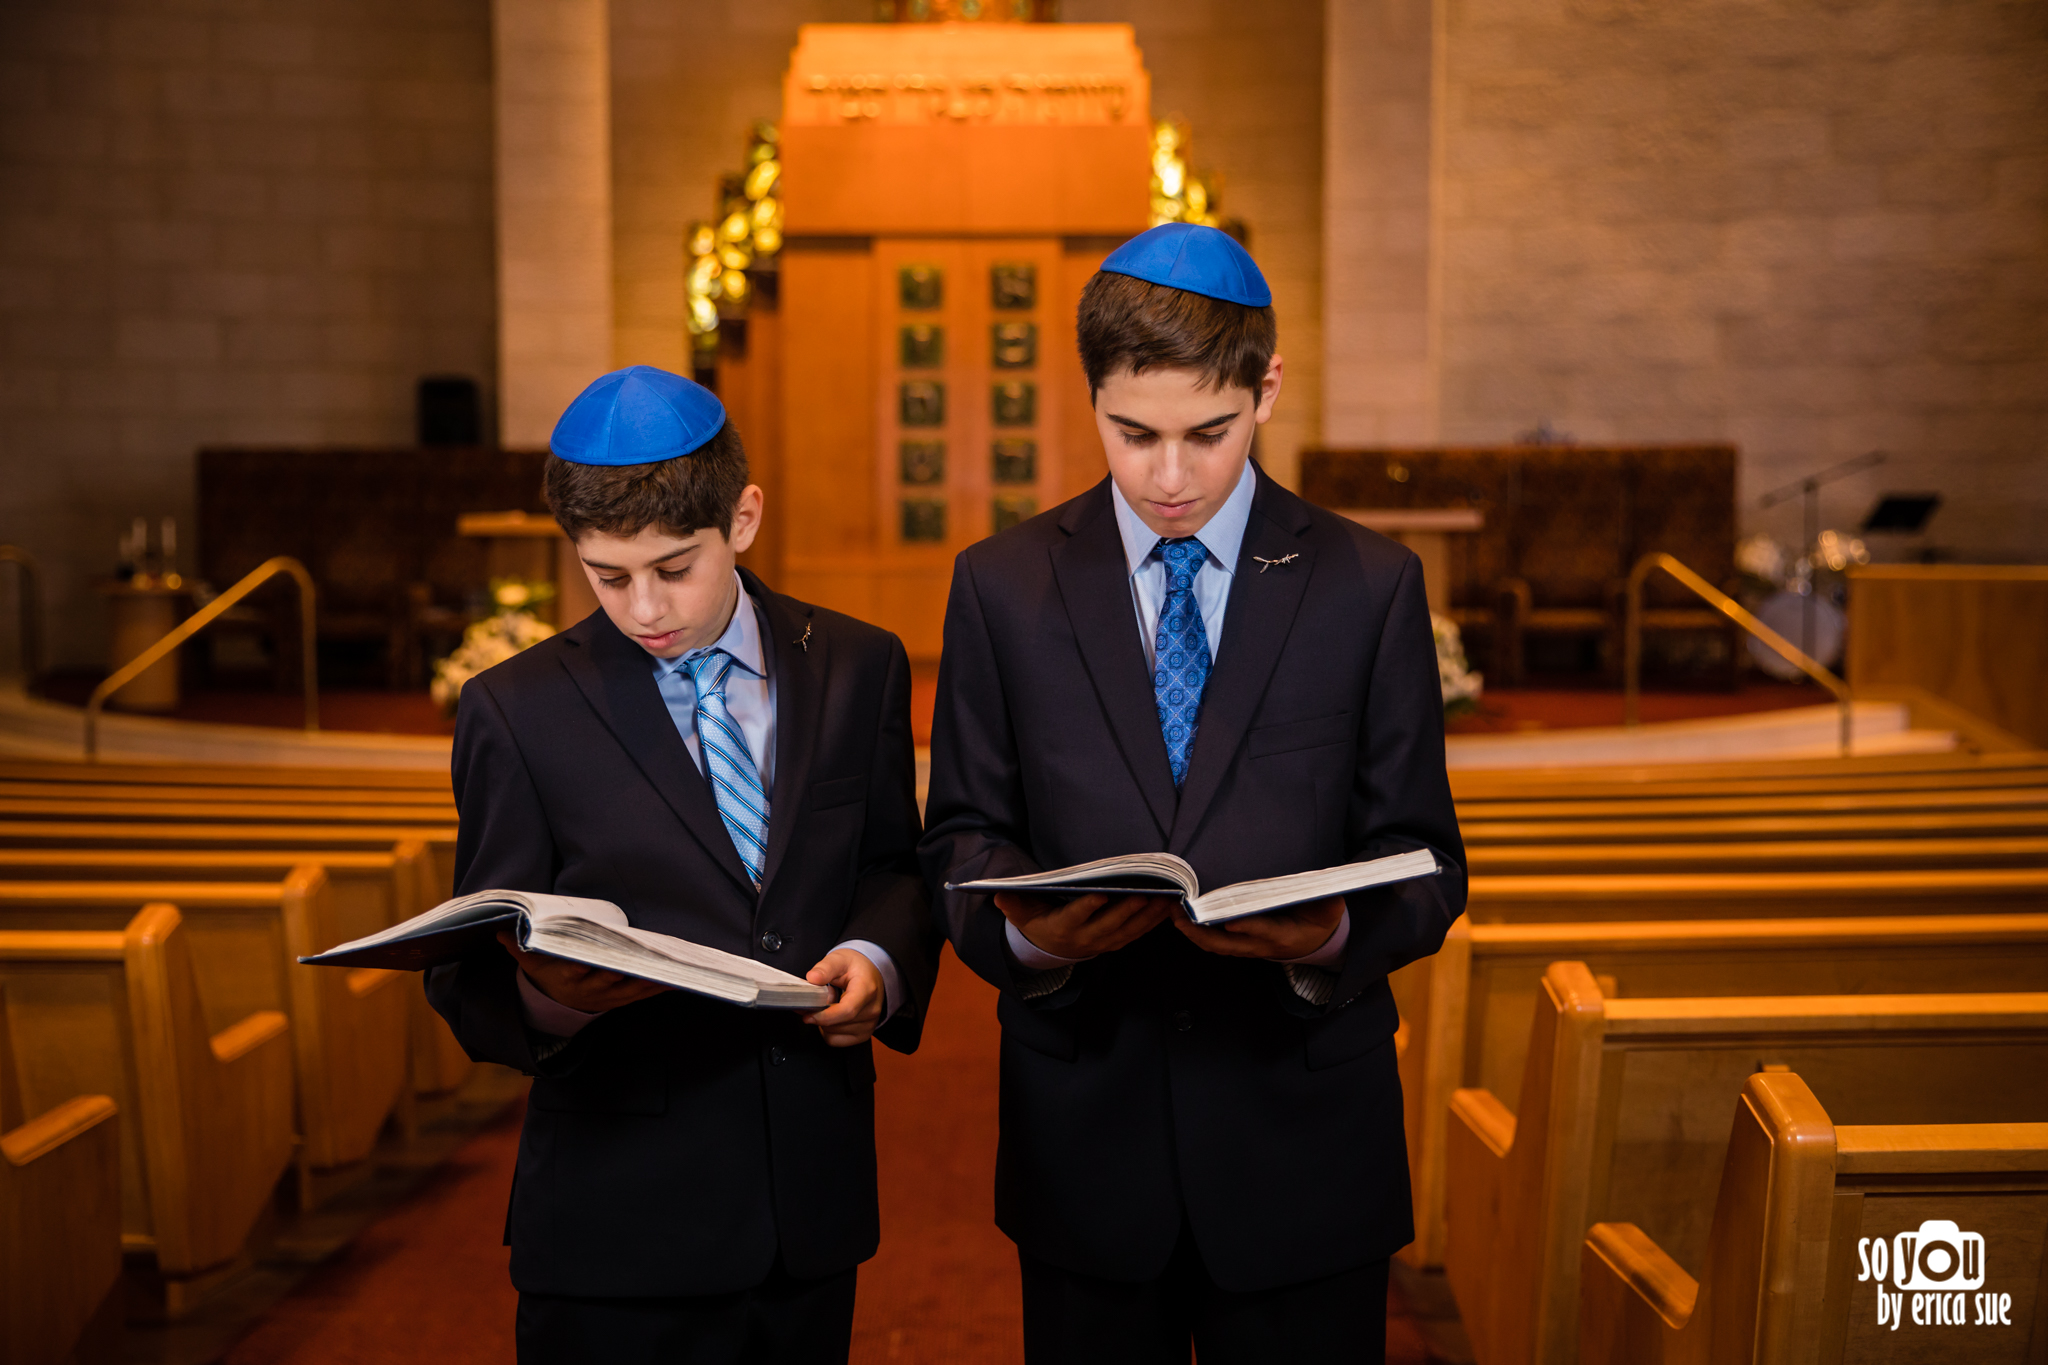 mitzvah portrait with siddur